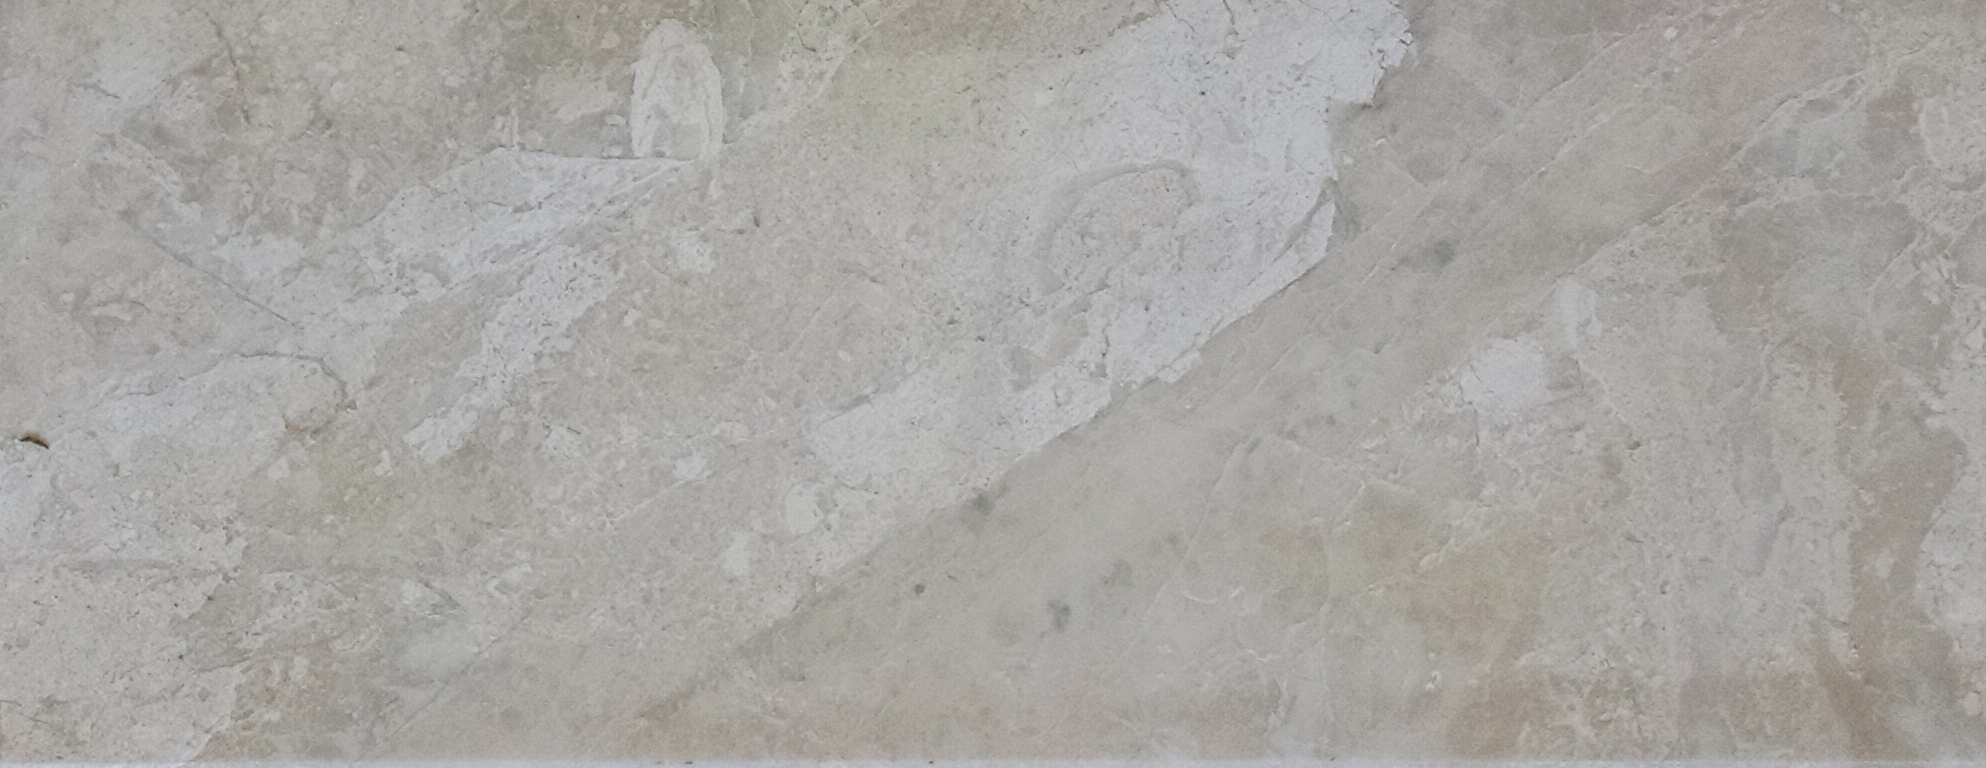 DIANA ROYAL -  TURKISH MARBLE WITH WIDE VARIATION AND SHADE.   THE BEAUTY OF NATURAL STONE IS THAT EACH PIECE IS DIFFERENT AND UNIQUE.    THE PICTURE IS A REPRESENTATION OF THE CHARACTER OF THE STONE'S VEINING AND COLOR ONLY.